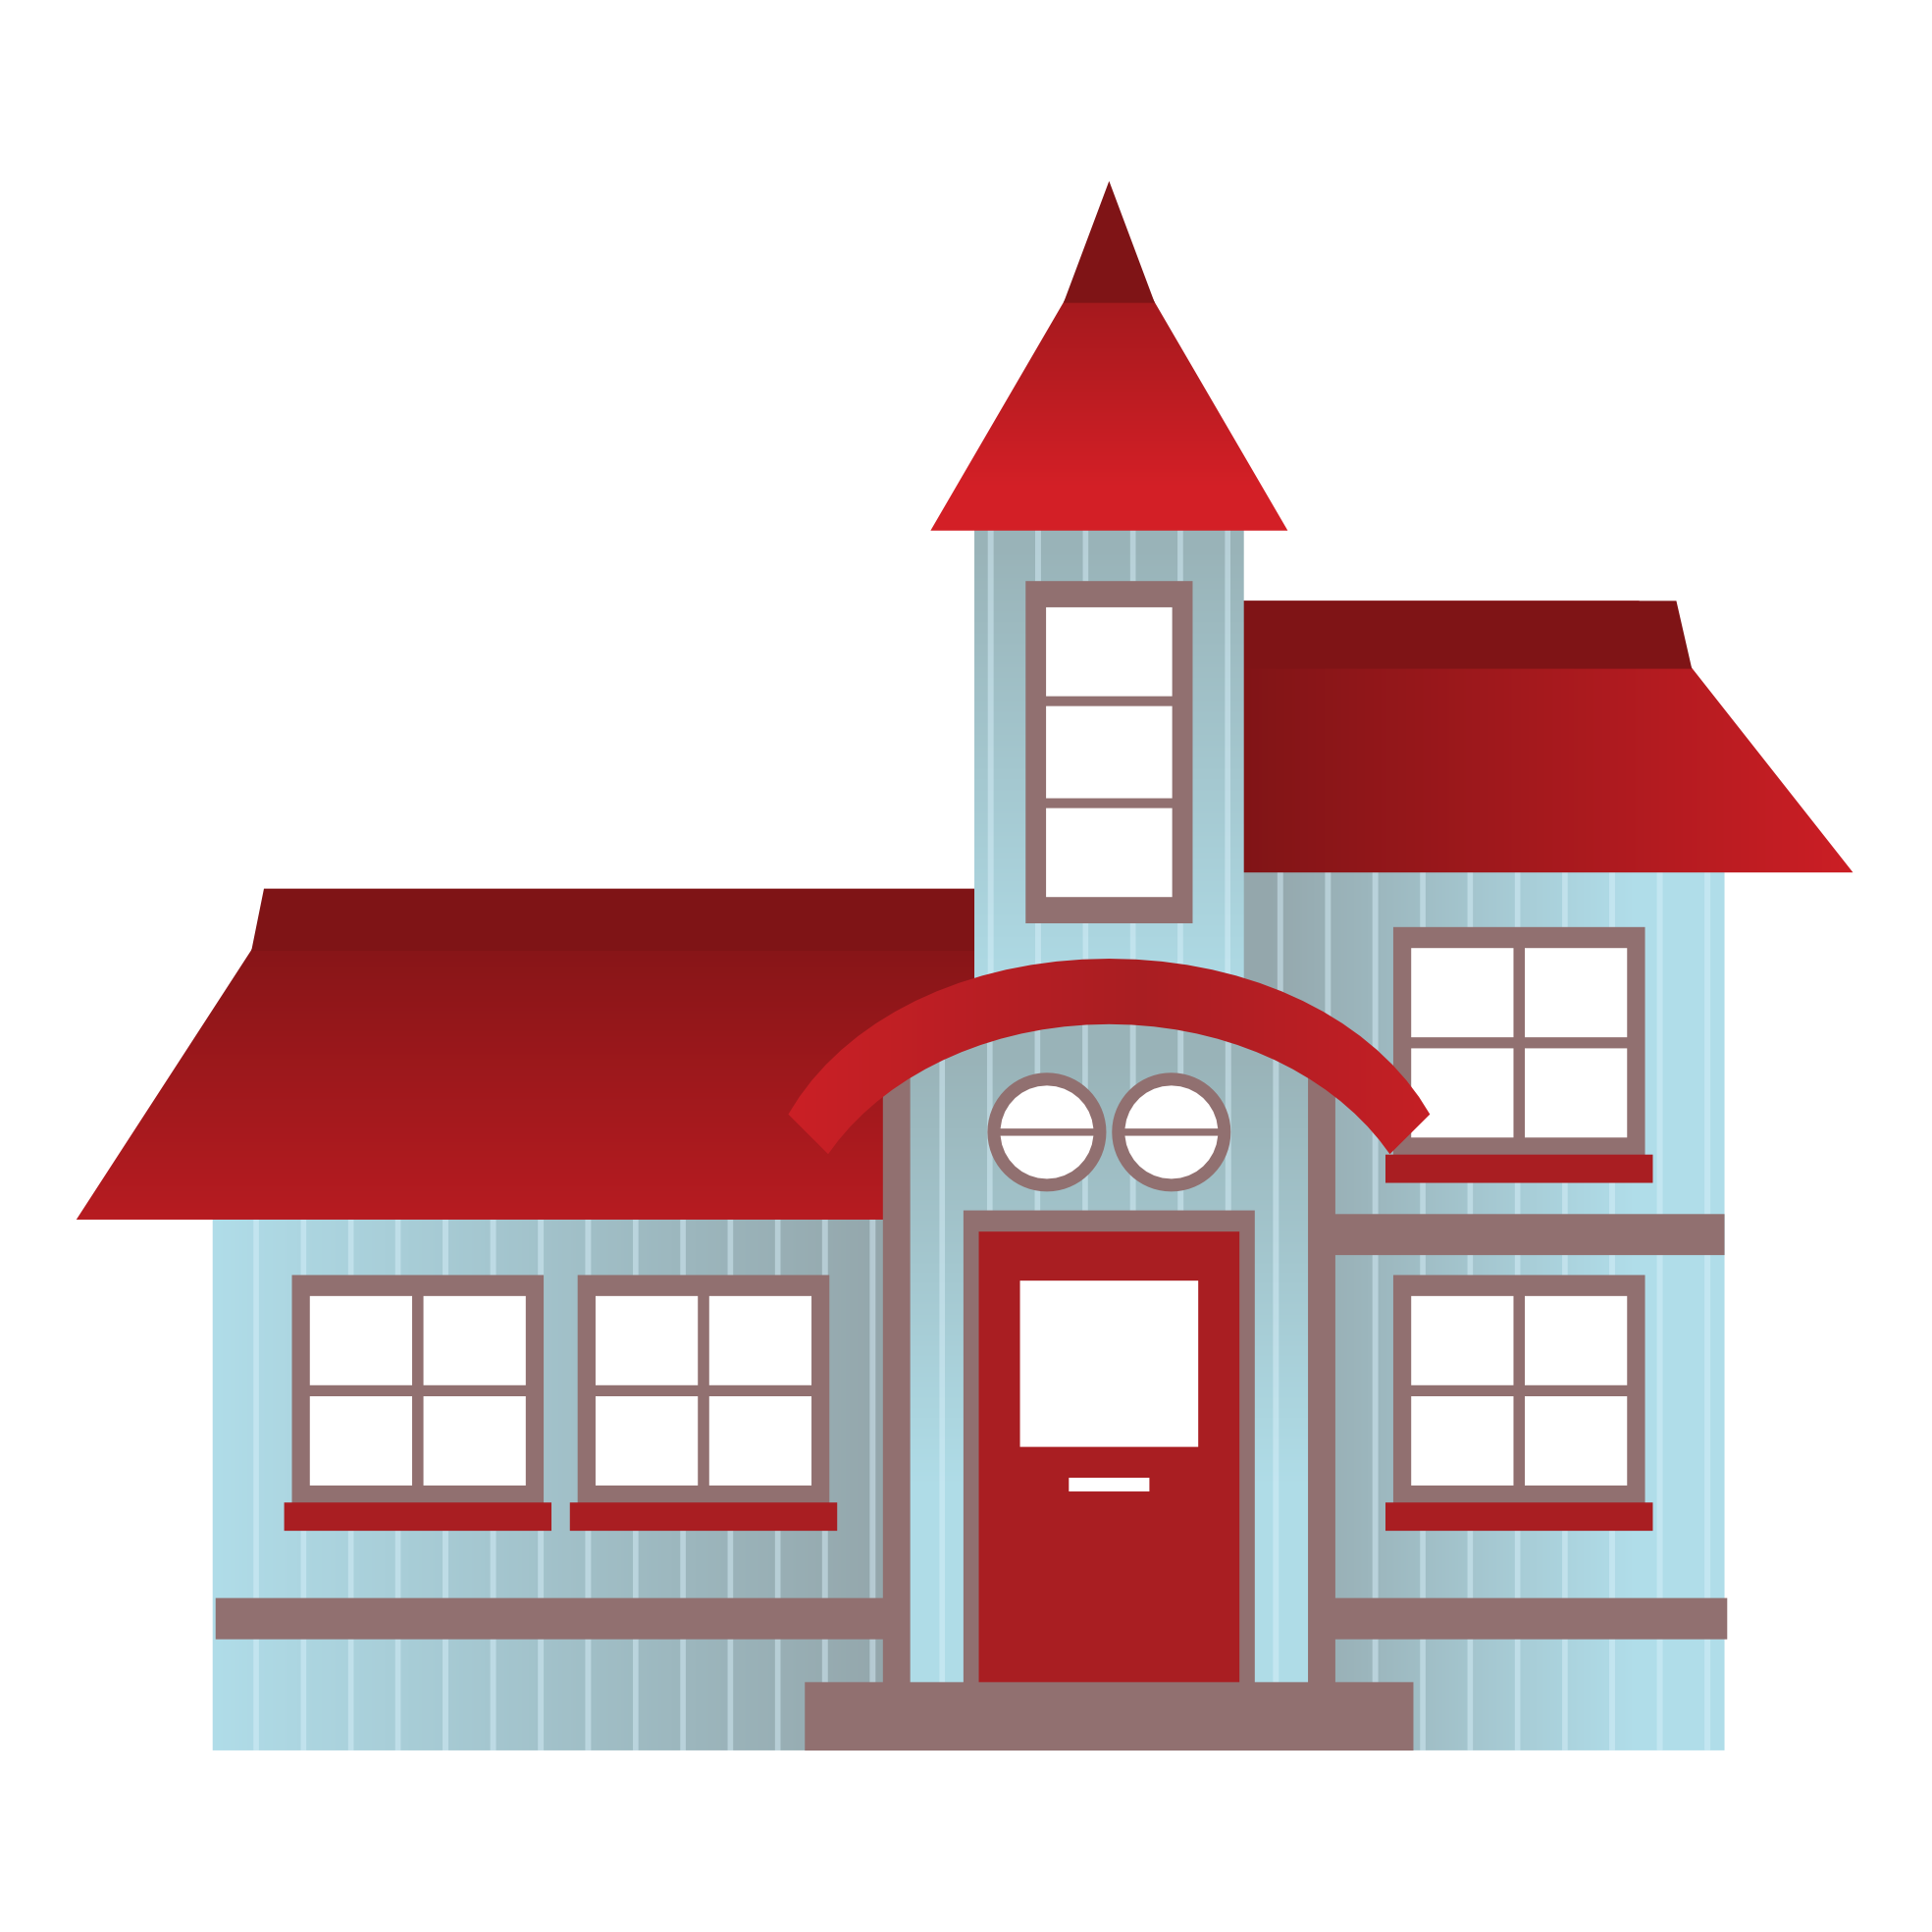 Homes vector illustration. Free house download clip